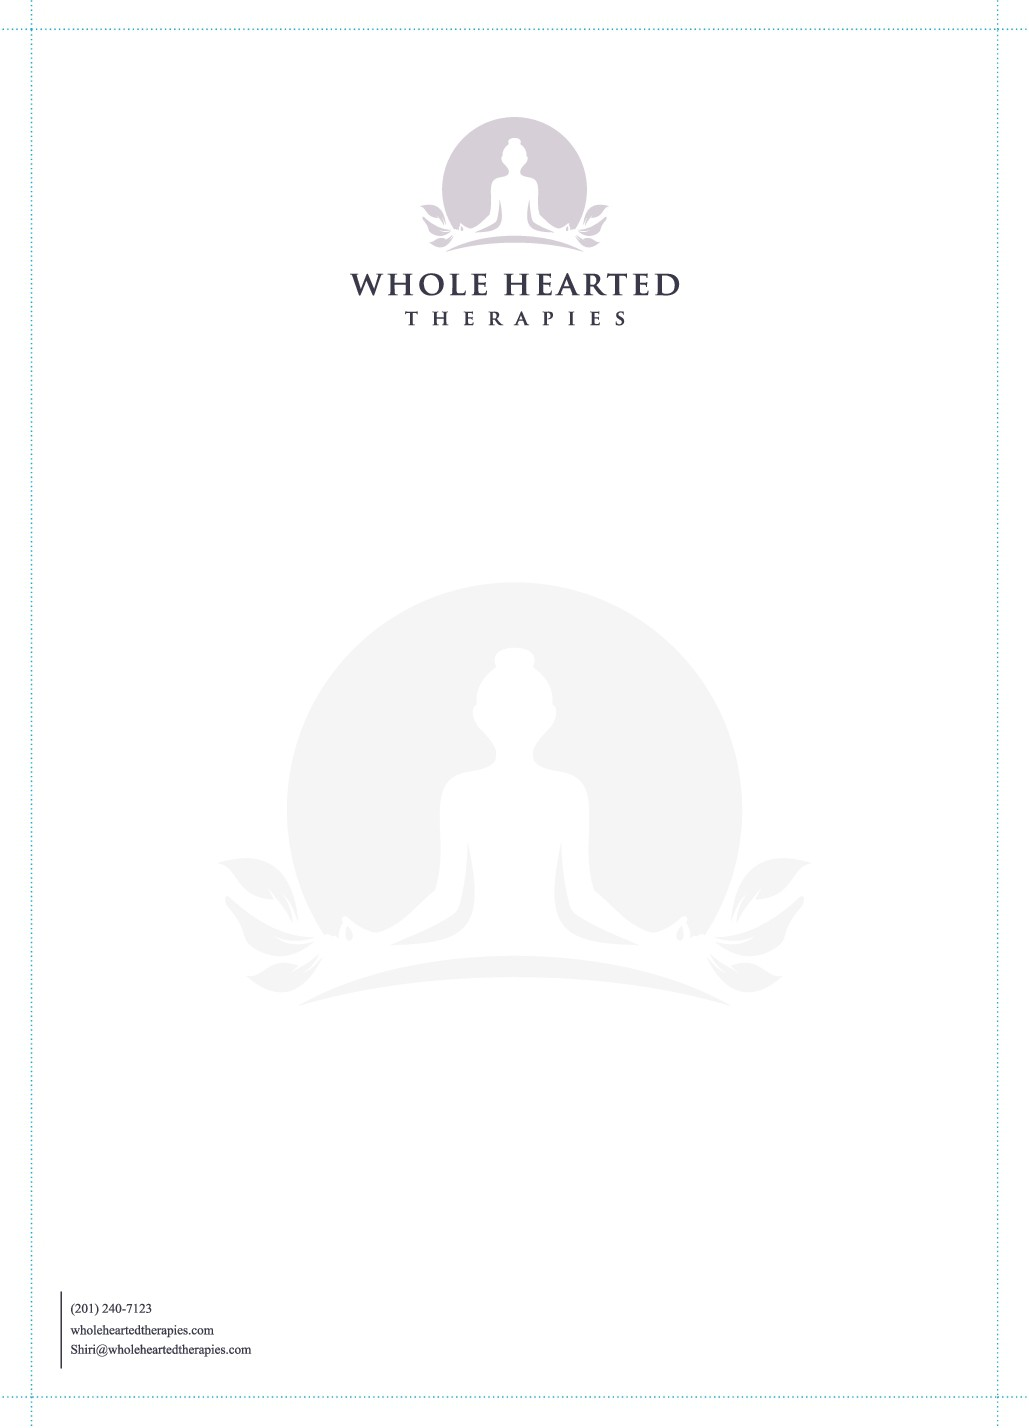 Whole Hearted Therapies